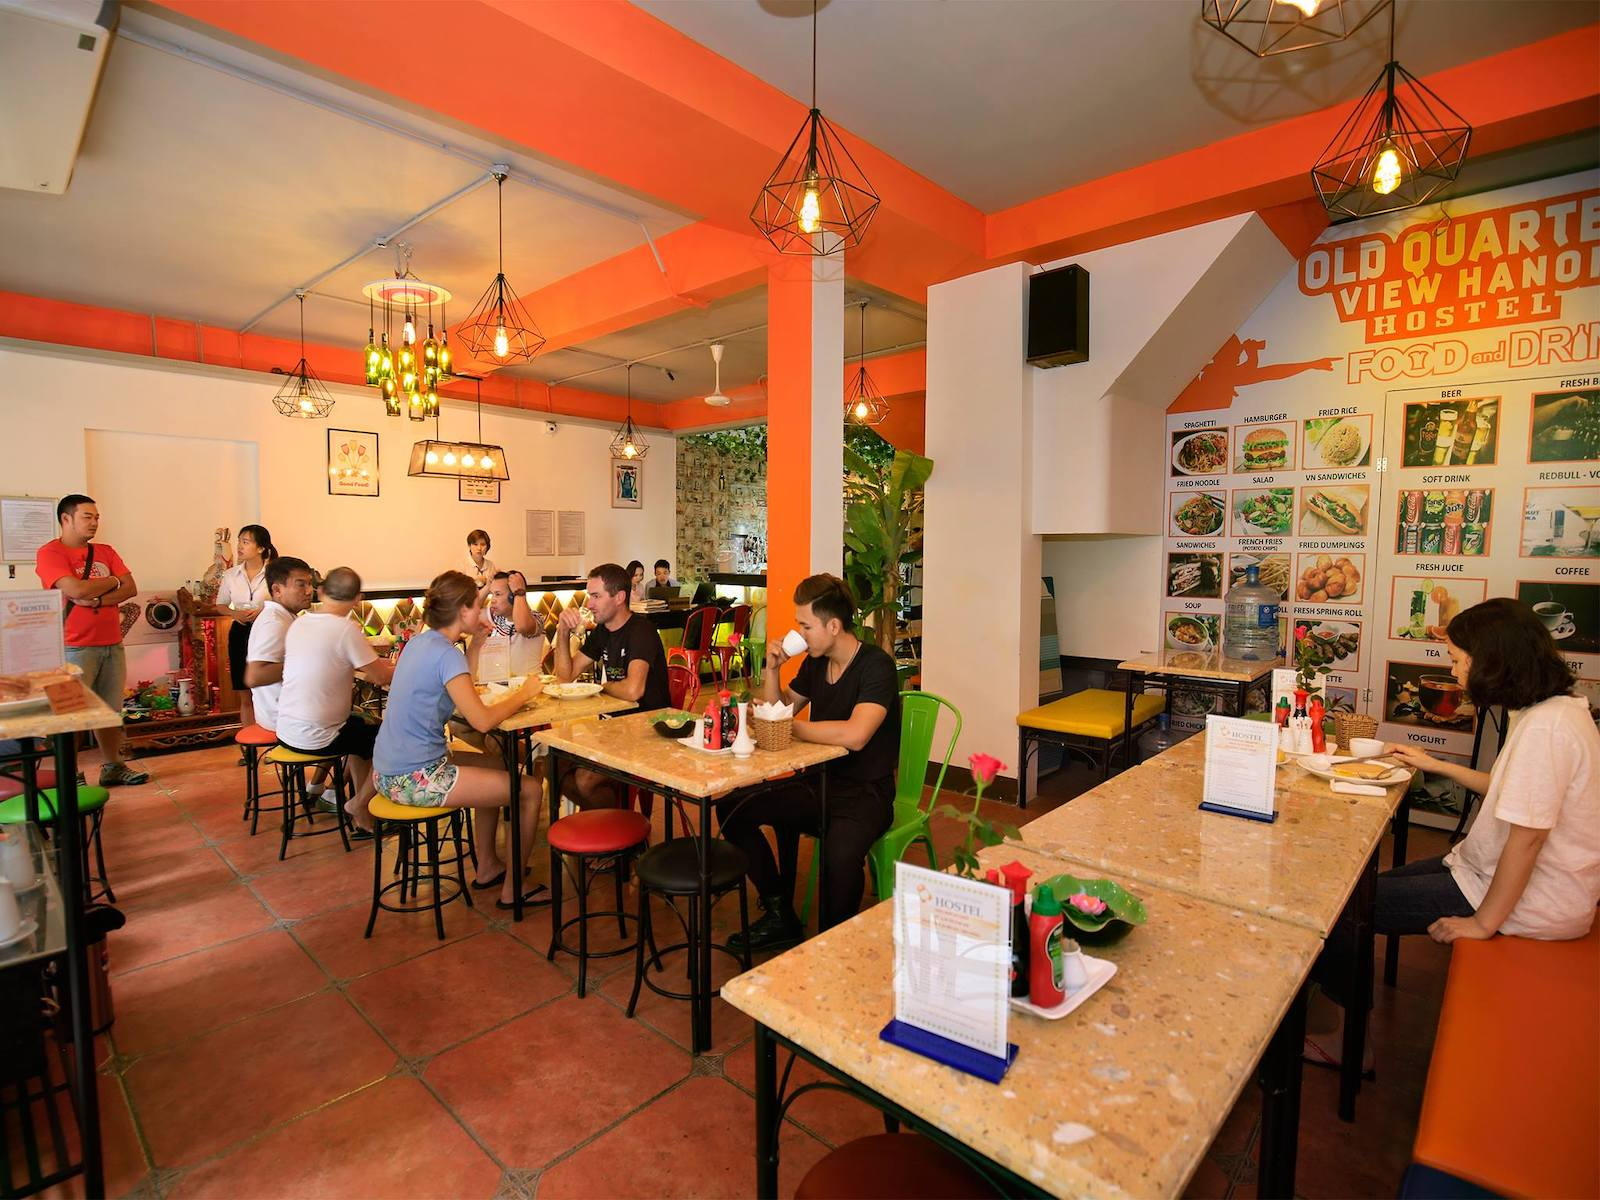 Image of the food and drink area at the Old Quarter View Hanoi Hostel in Vietnam